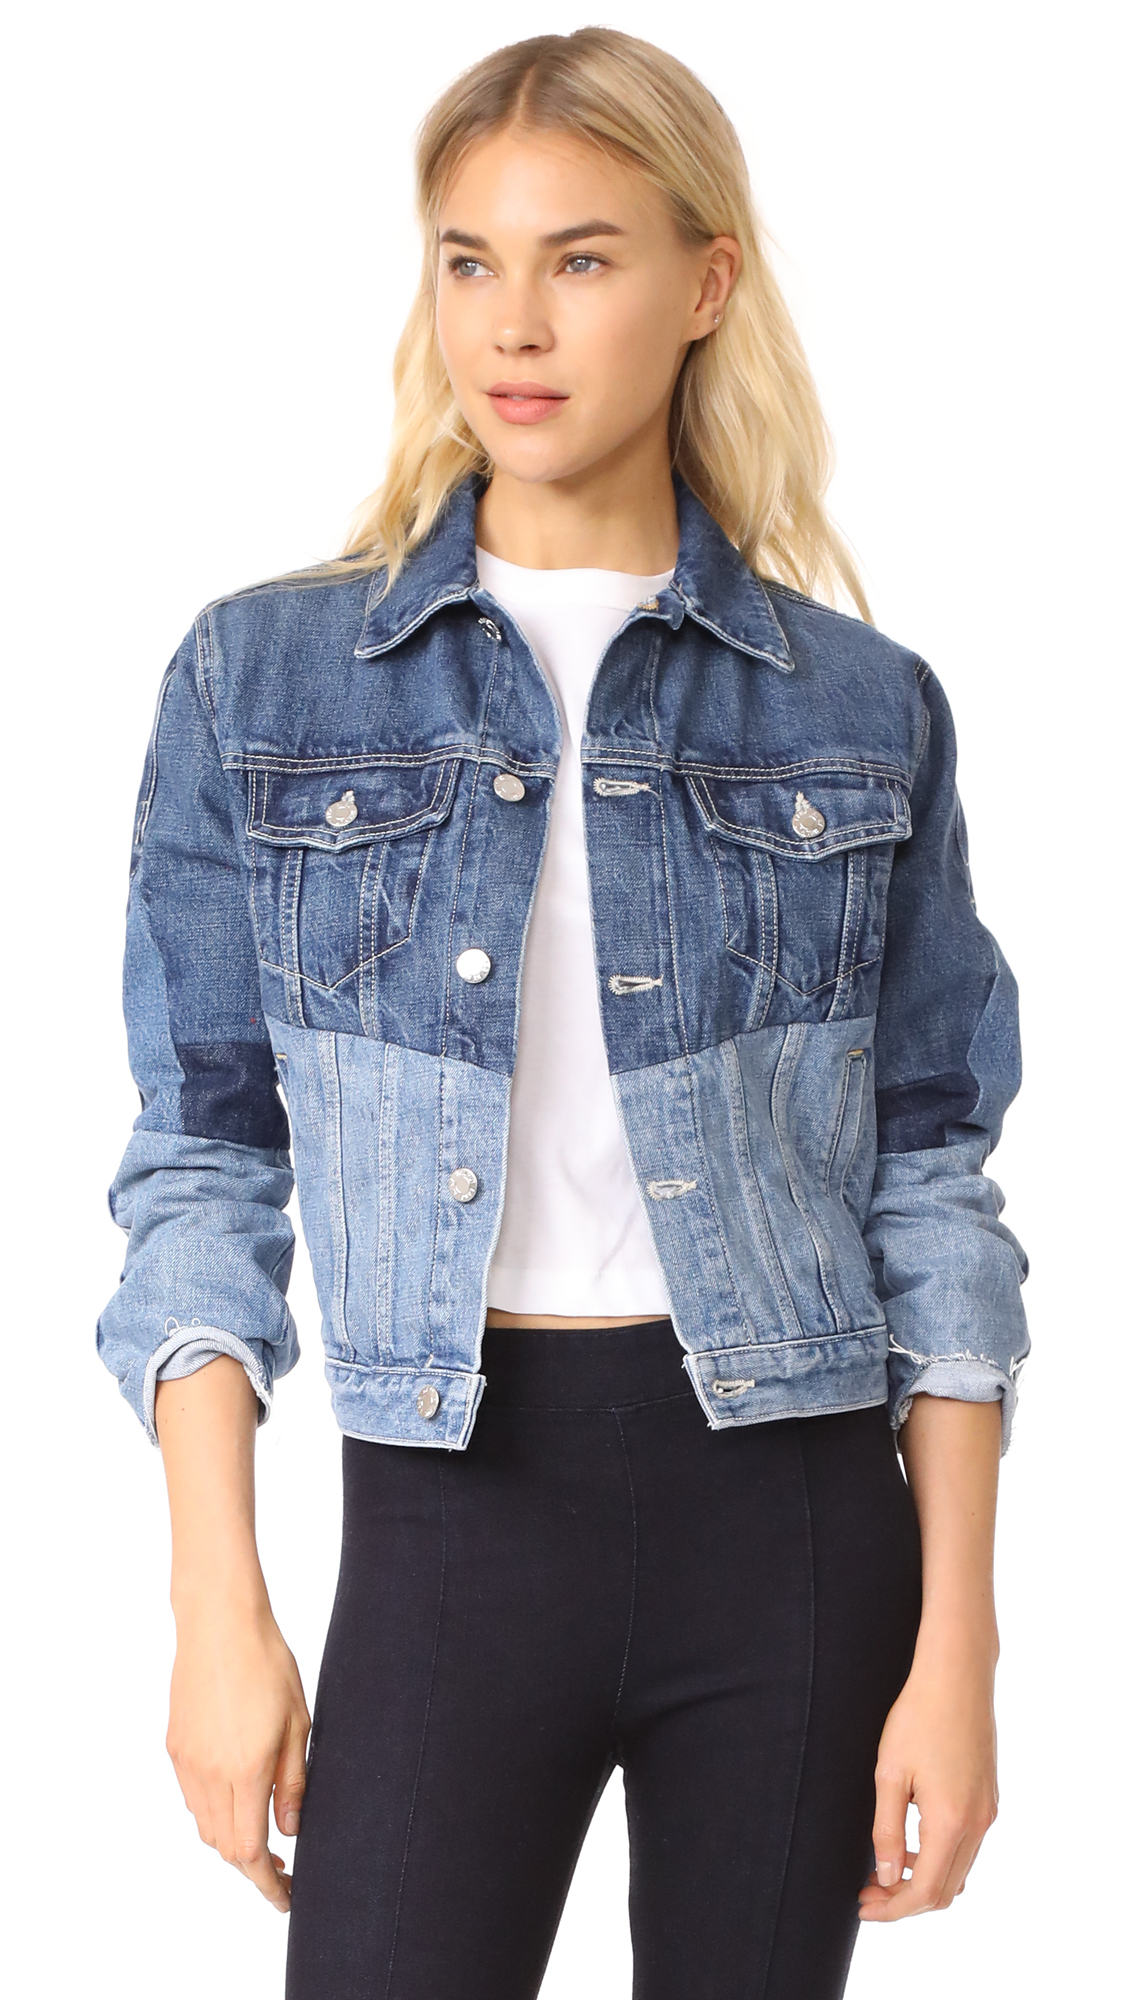 Helmut Lang Mixed Jean Jacket - Mixed Vintage Blue